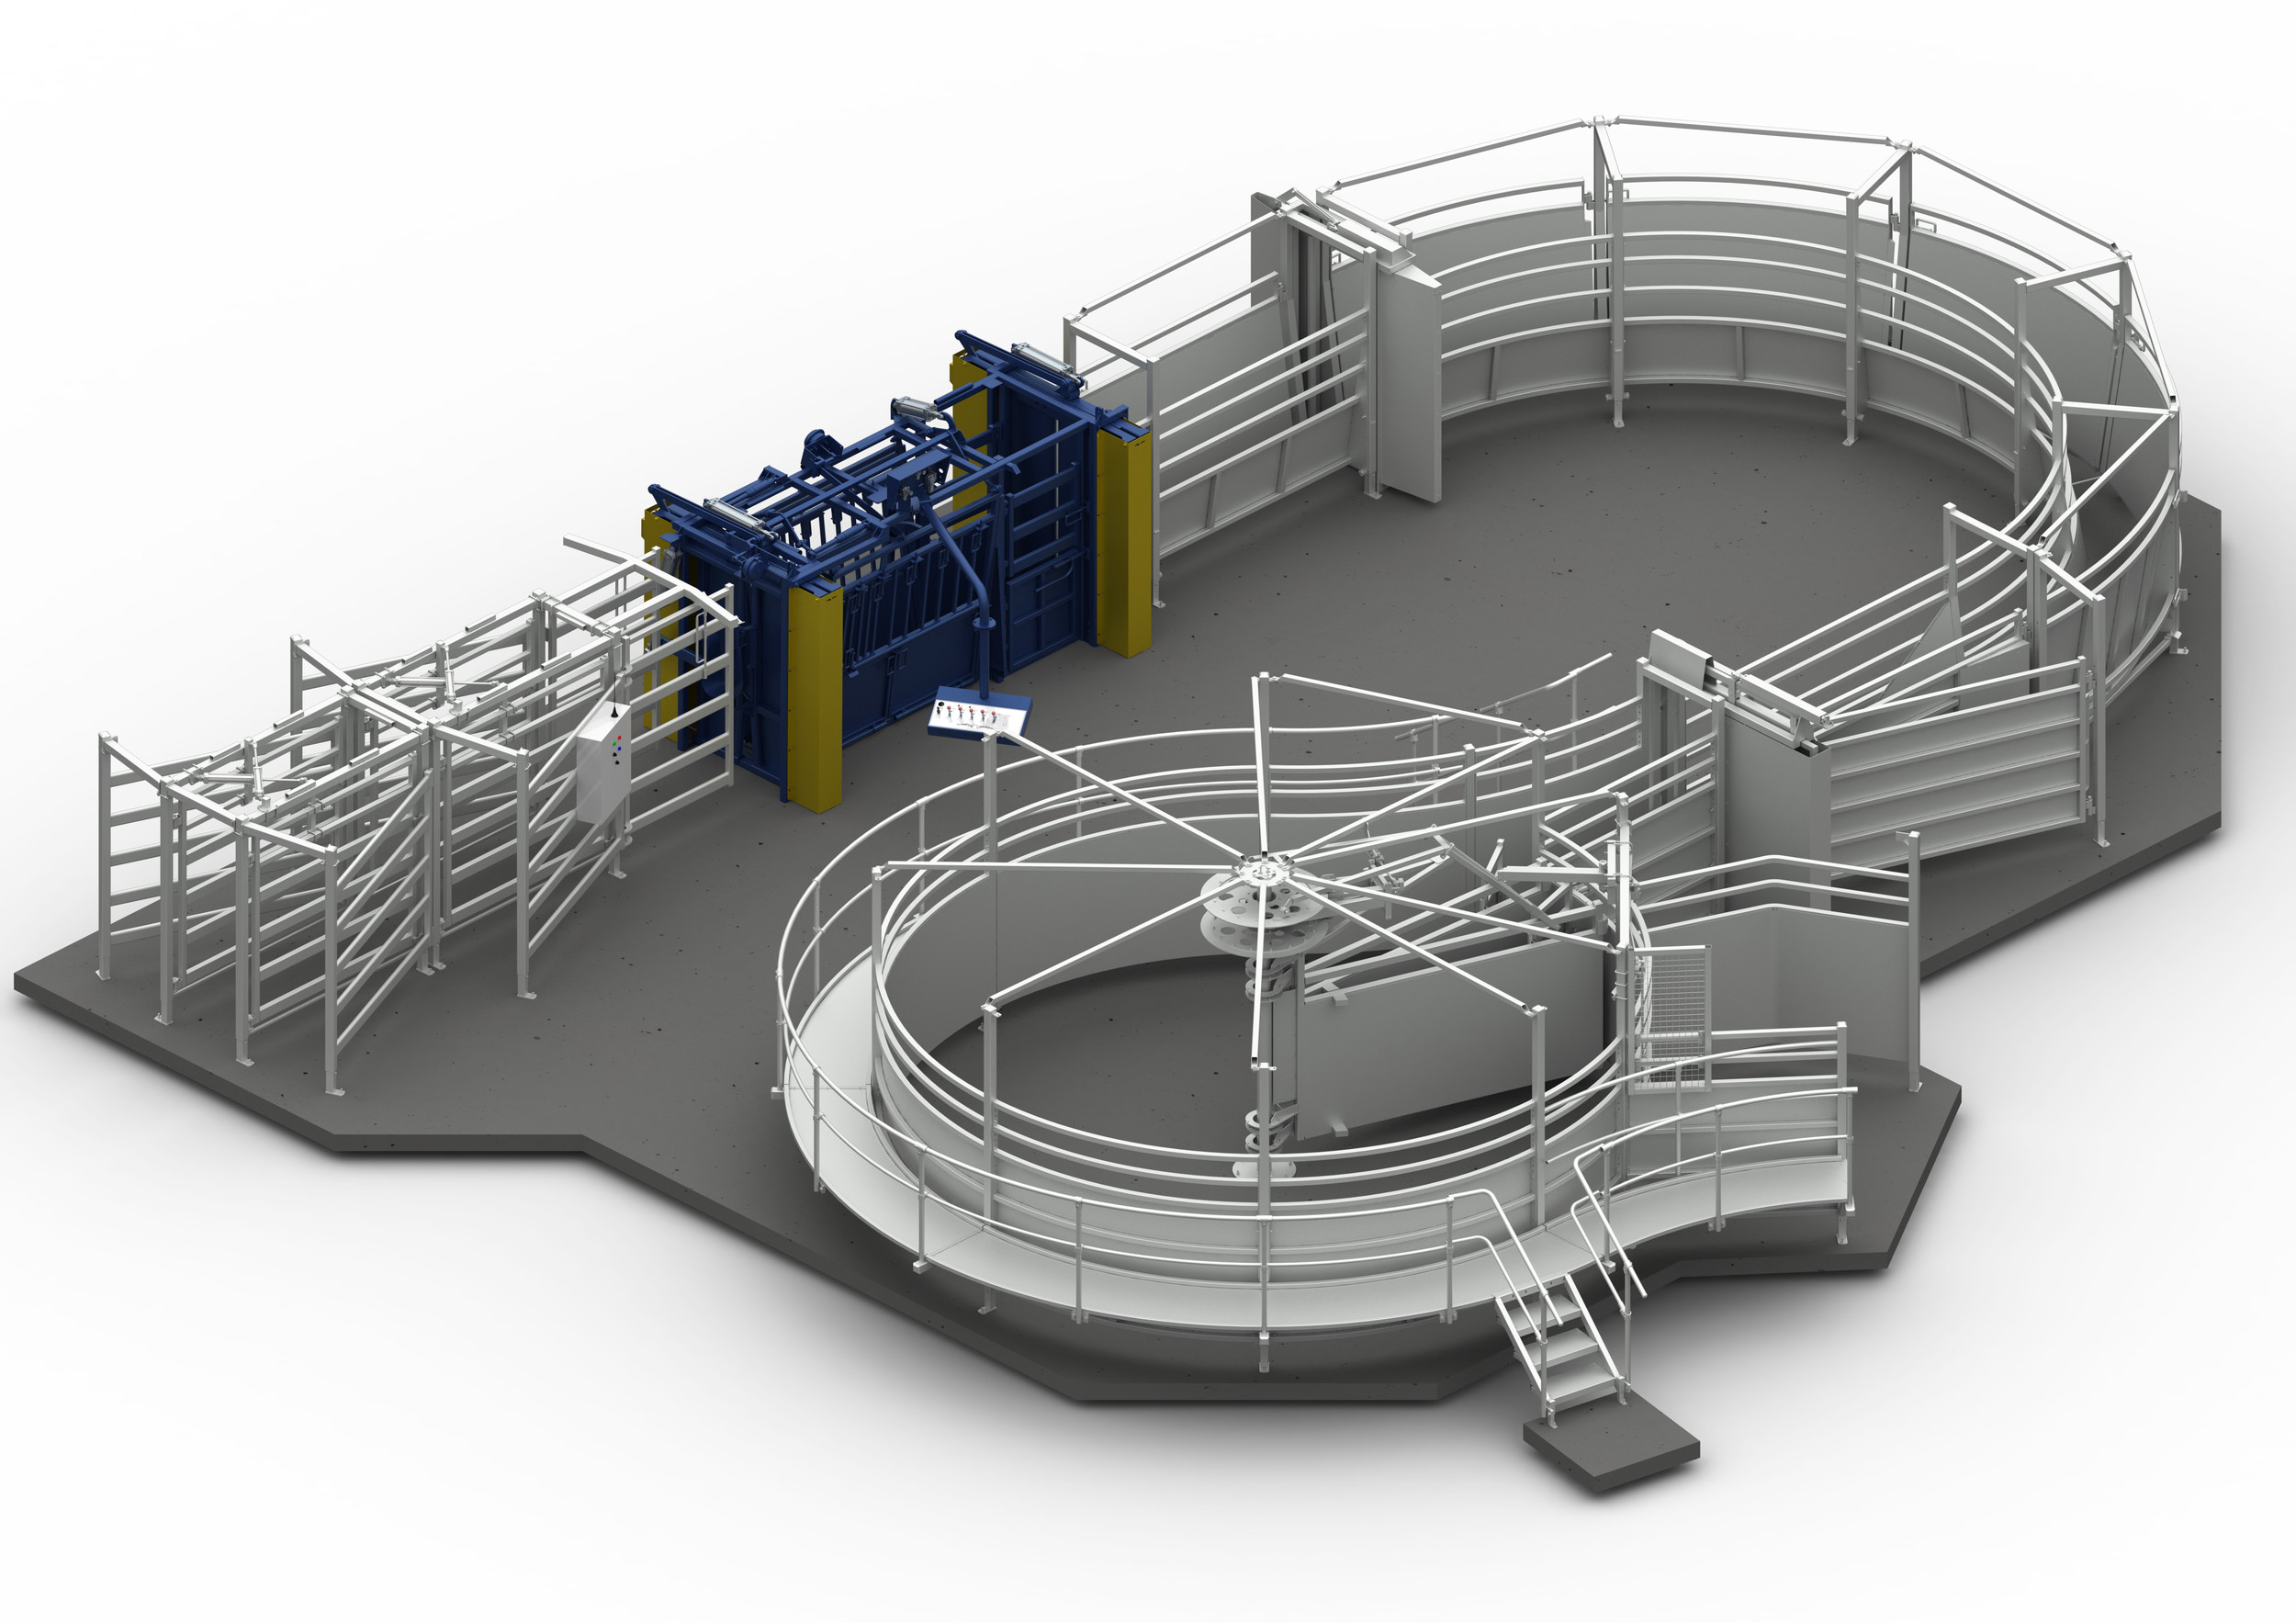 Thompson Longhorn core working centre (graphic representation) featuring: 360 °  crowding yard, single curved lane - vee profile, Sumo restrainer/crush, 5 way pneumatic sorting system / drafter & slide gates.